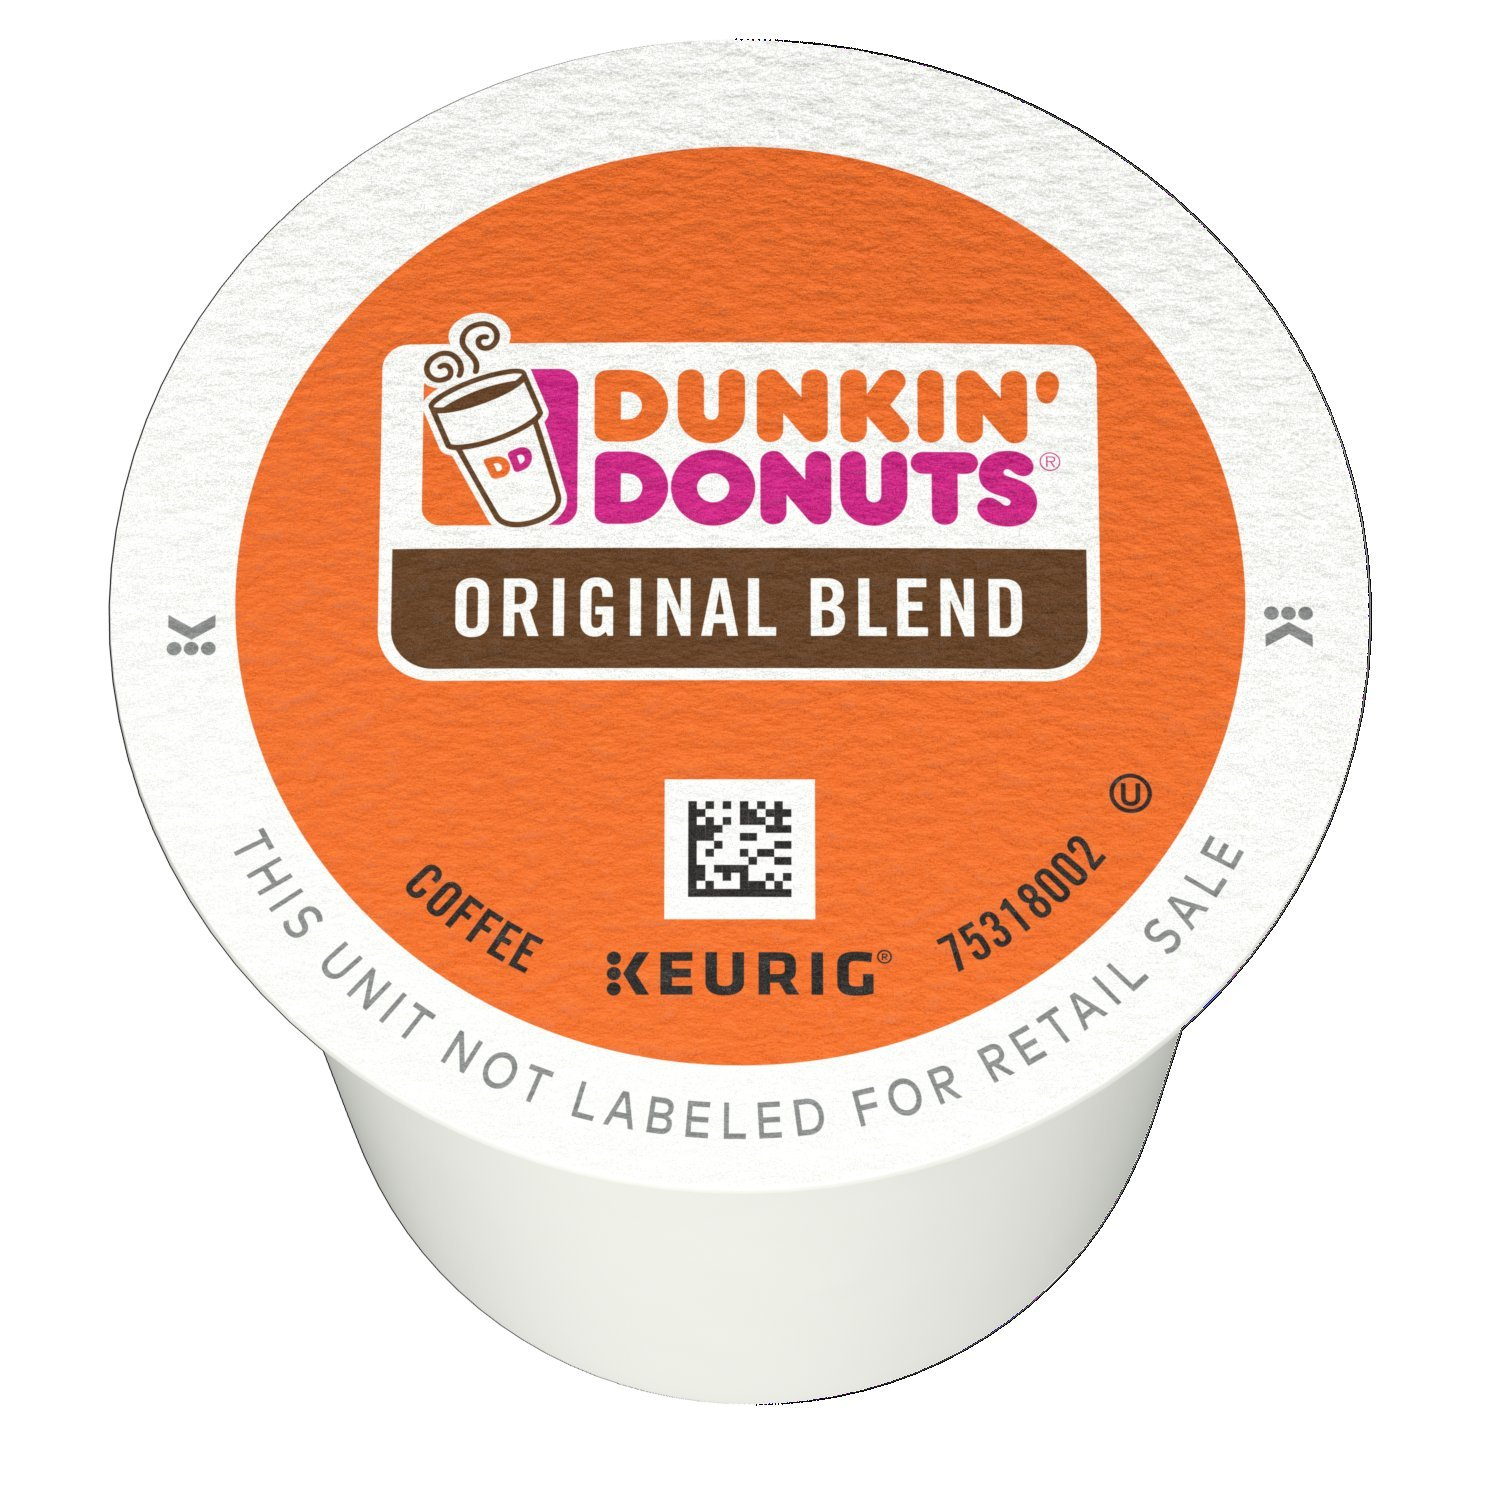 Dunkin' Donuts Original Blend K-Cup Pods for Keurig Brewers, Medium Roast, 128 Count